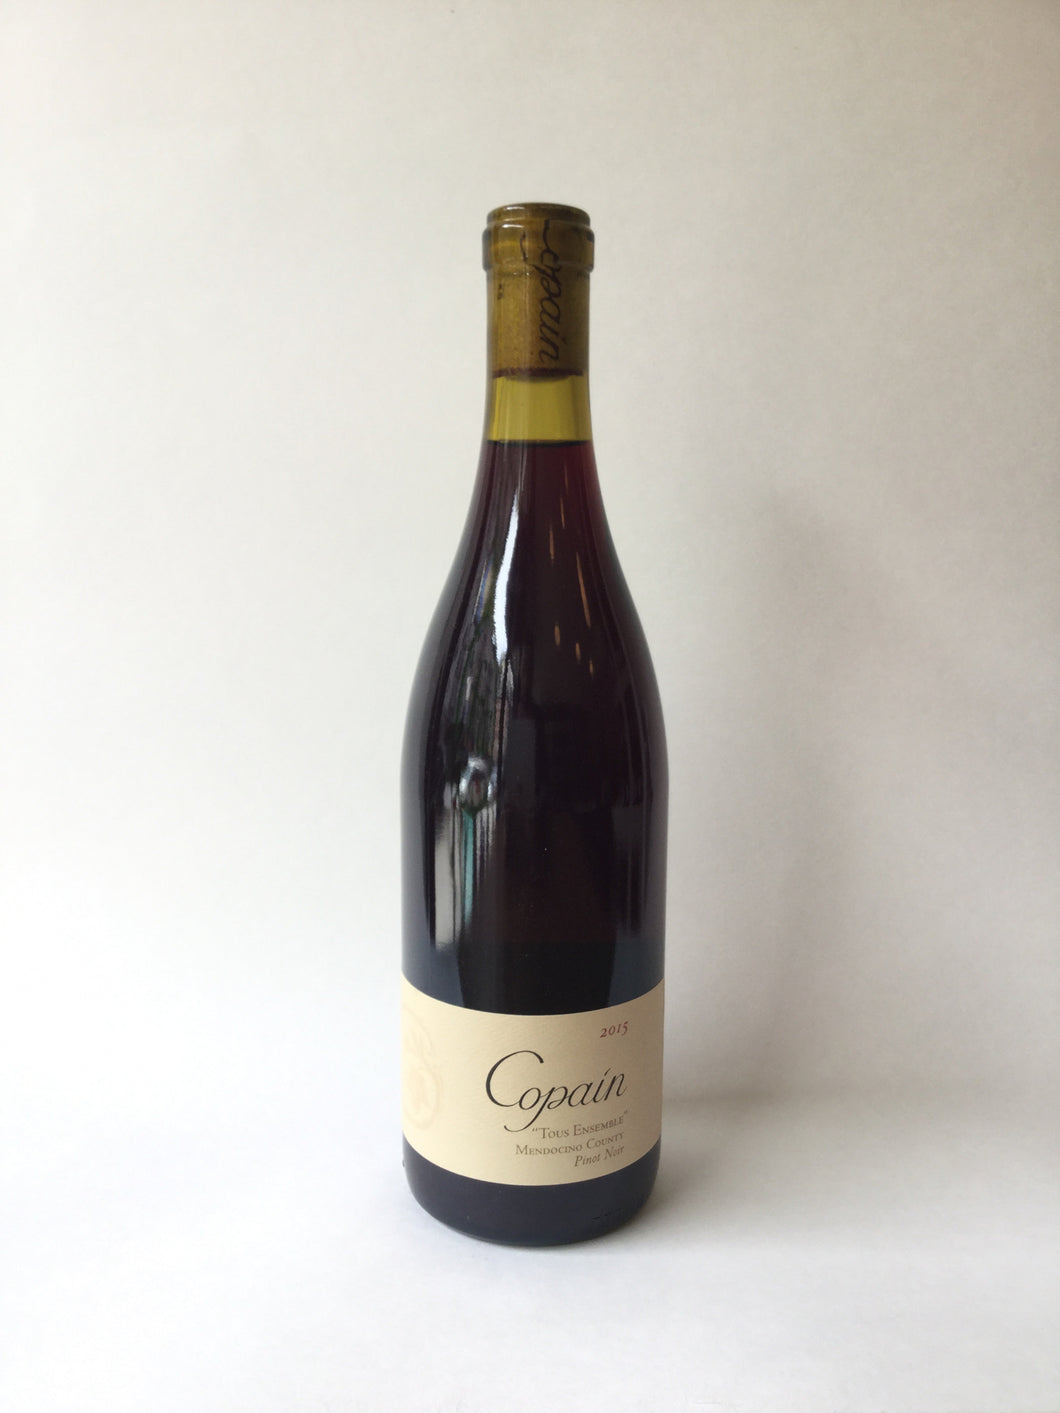 Copain, Sonoma Coast, Pinot Noir 'Tous Ensemble' 2016, 750ml - Frankly Wines